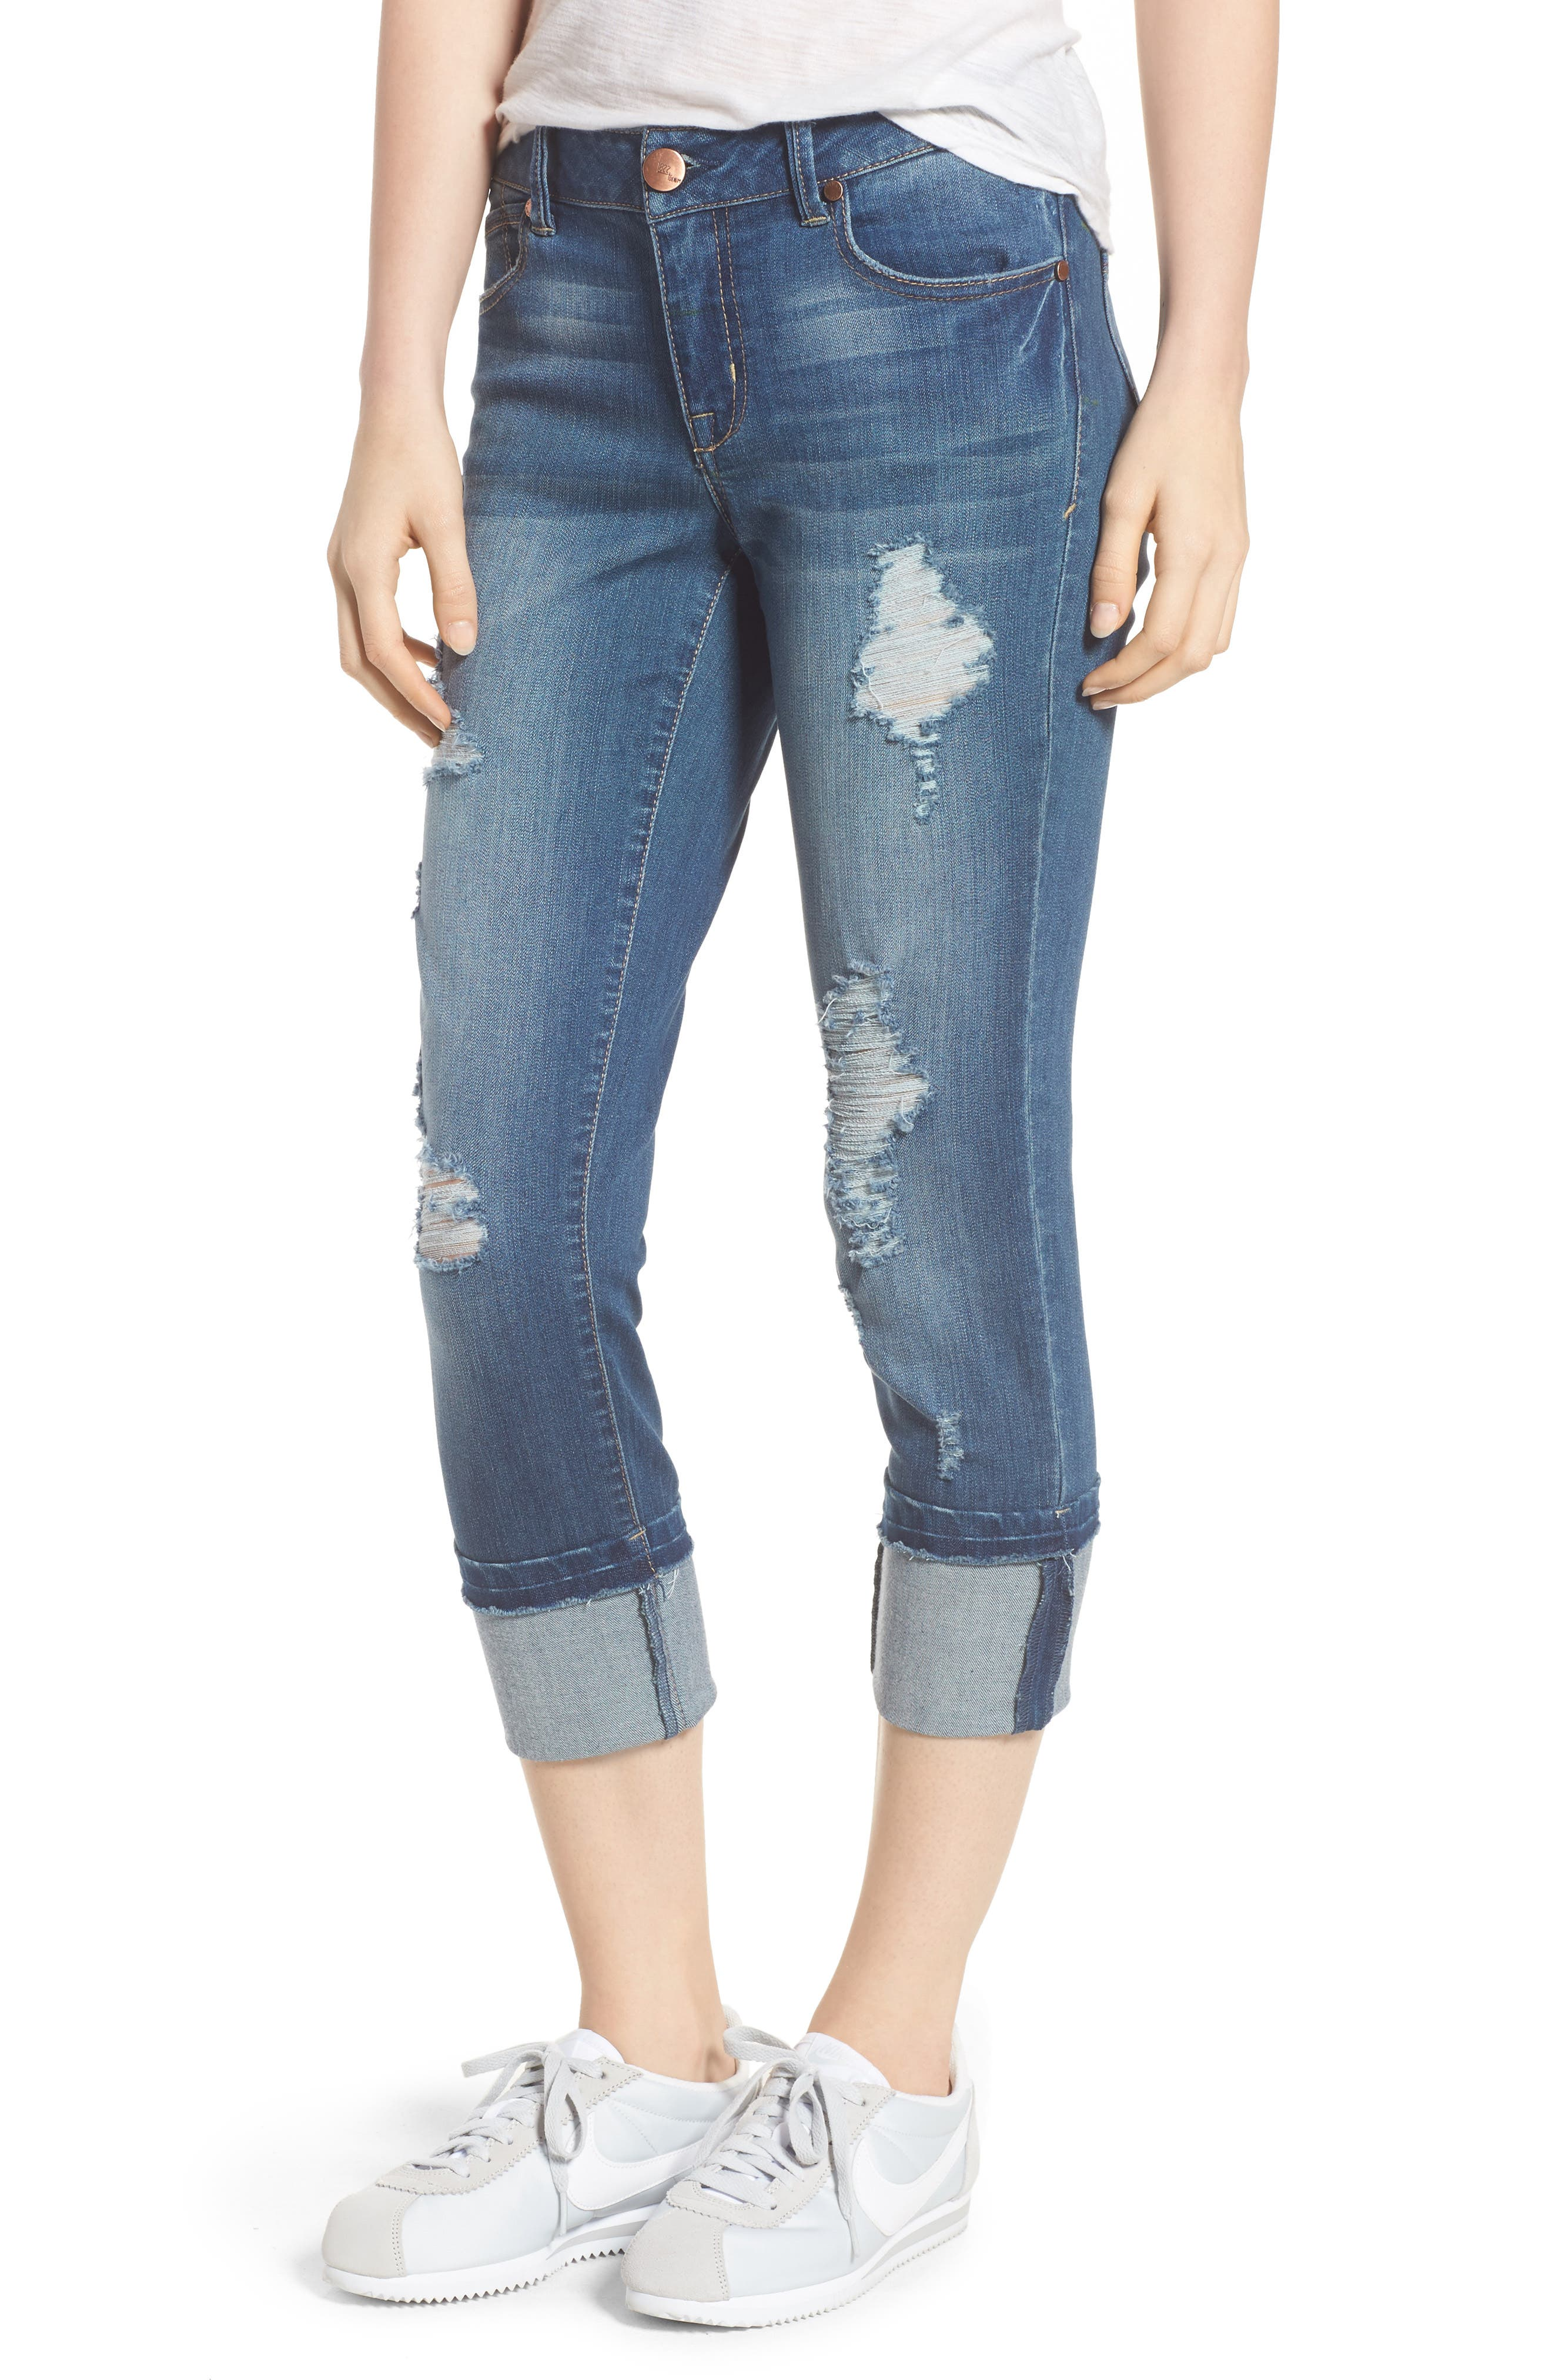 Decon Cuffed Skinny Jeans,                             Main thumbnail 1, color,                             Dedra